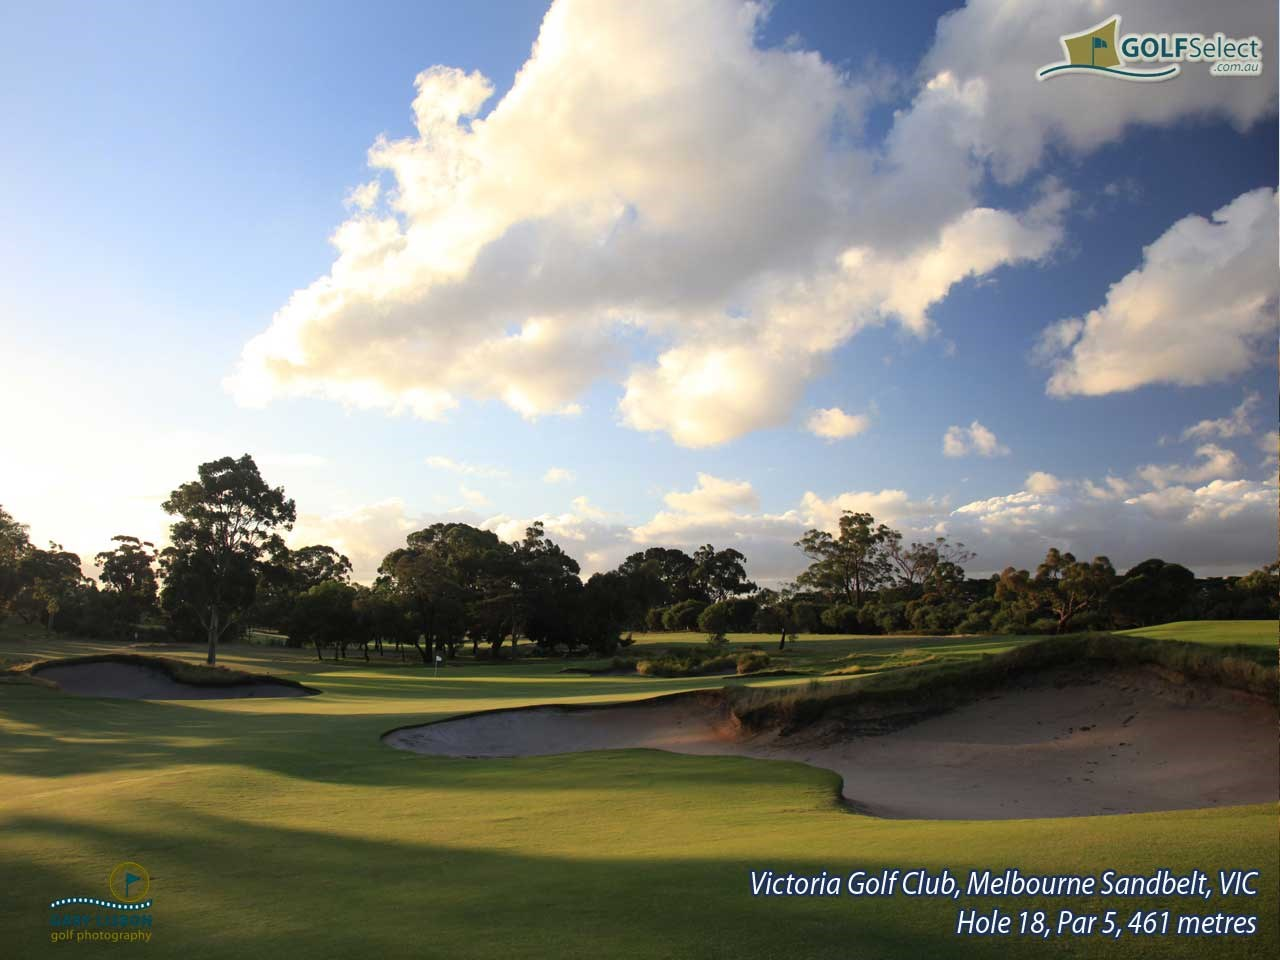 Victoria Golf Club Hole 18, Par 5, 461 metres